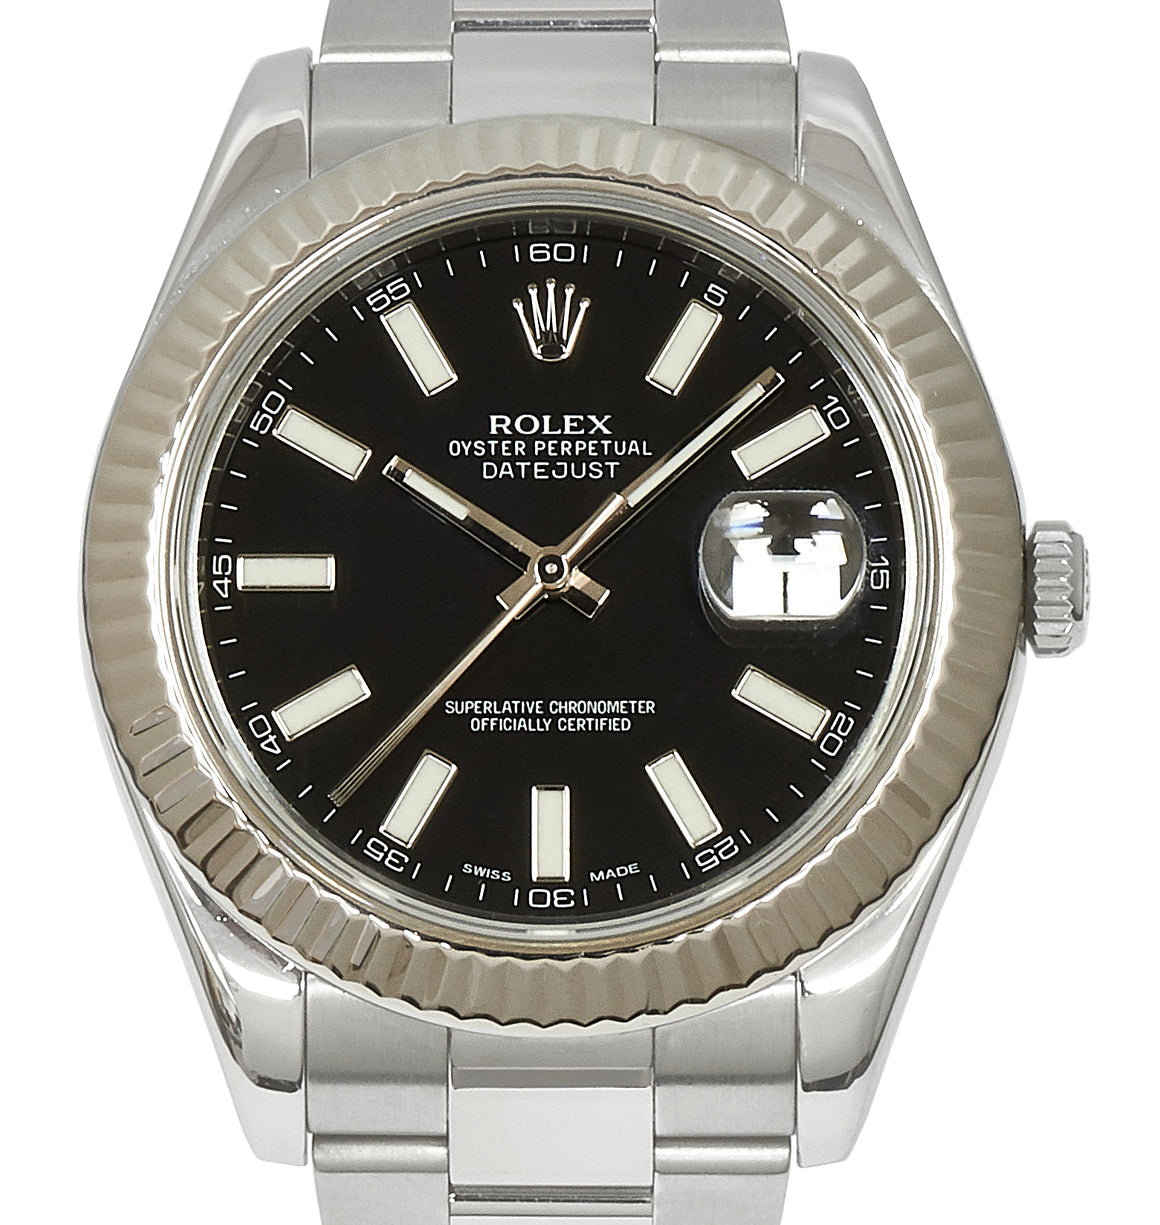 Rolex Datejust II, Black Dial. Ref: 116334 (Guarantee & Service Card)